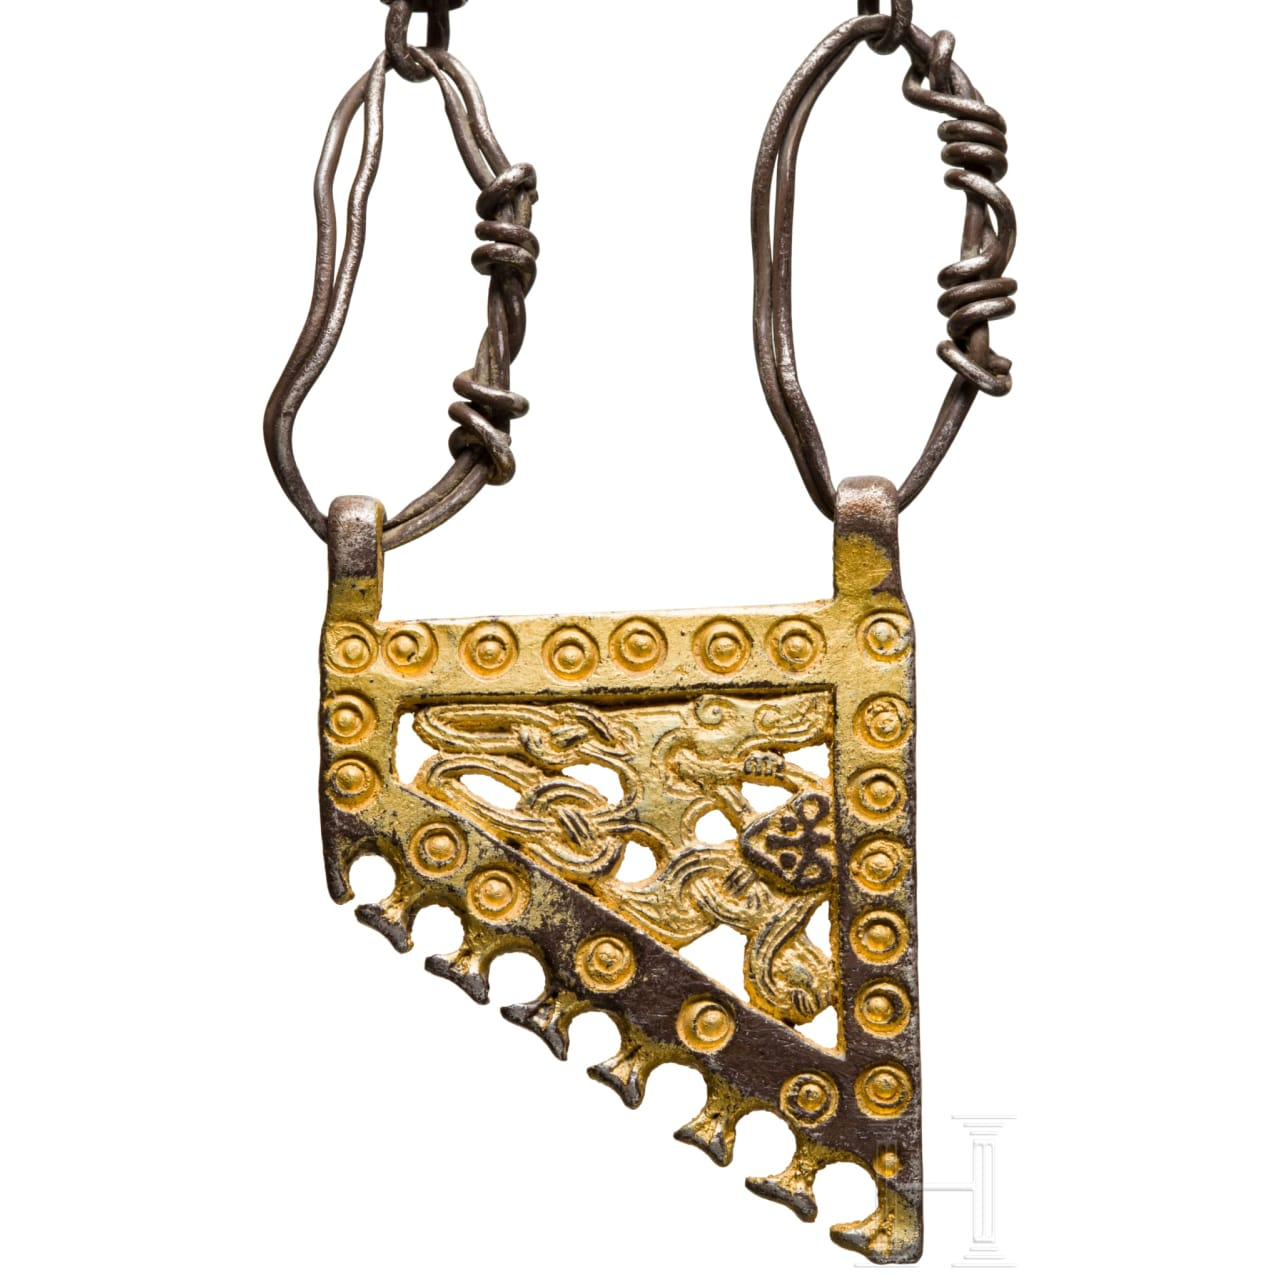 A Viking necklace with gold pendant, 9th – 10th century